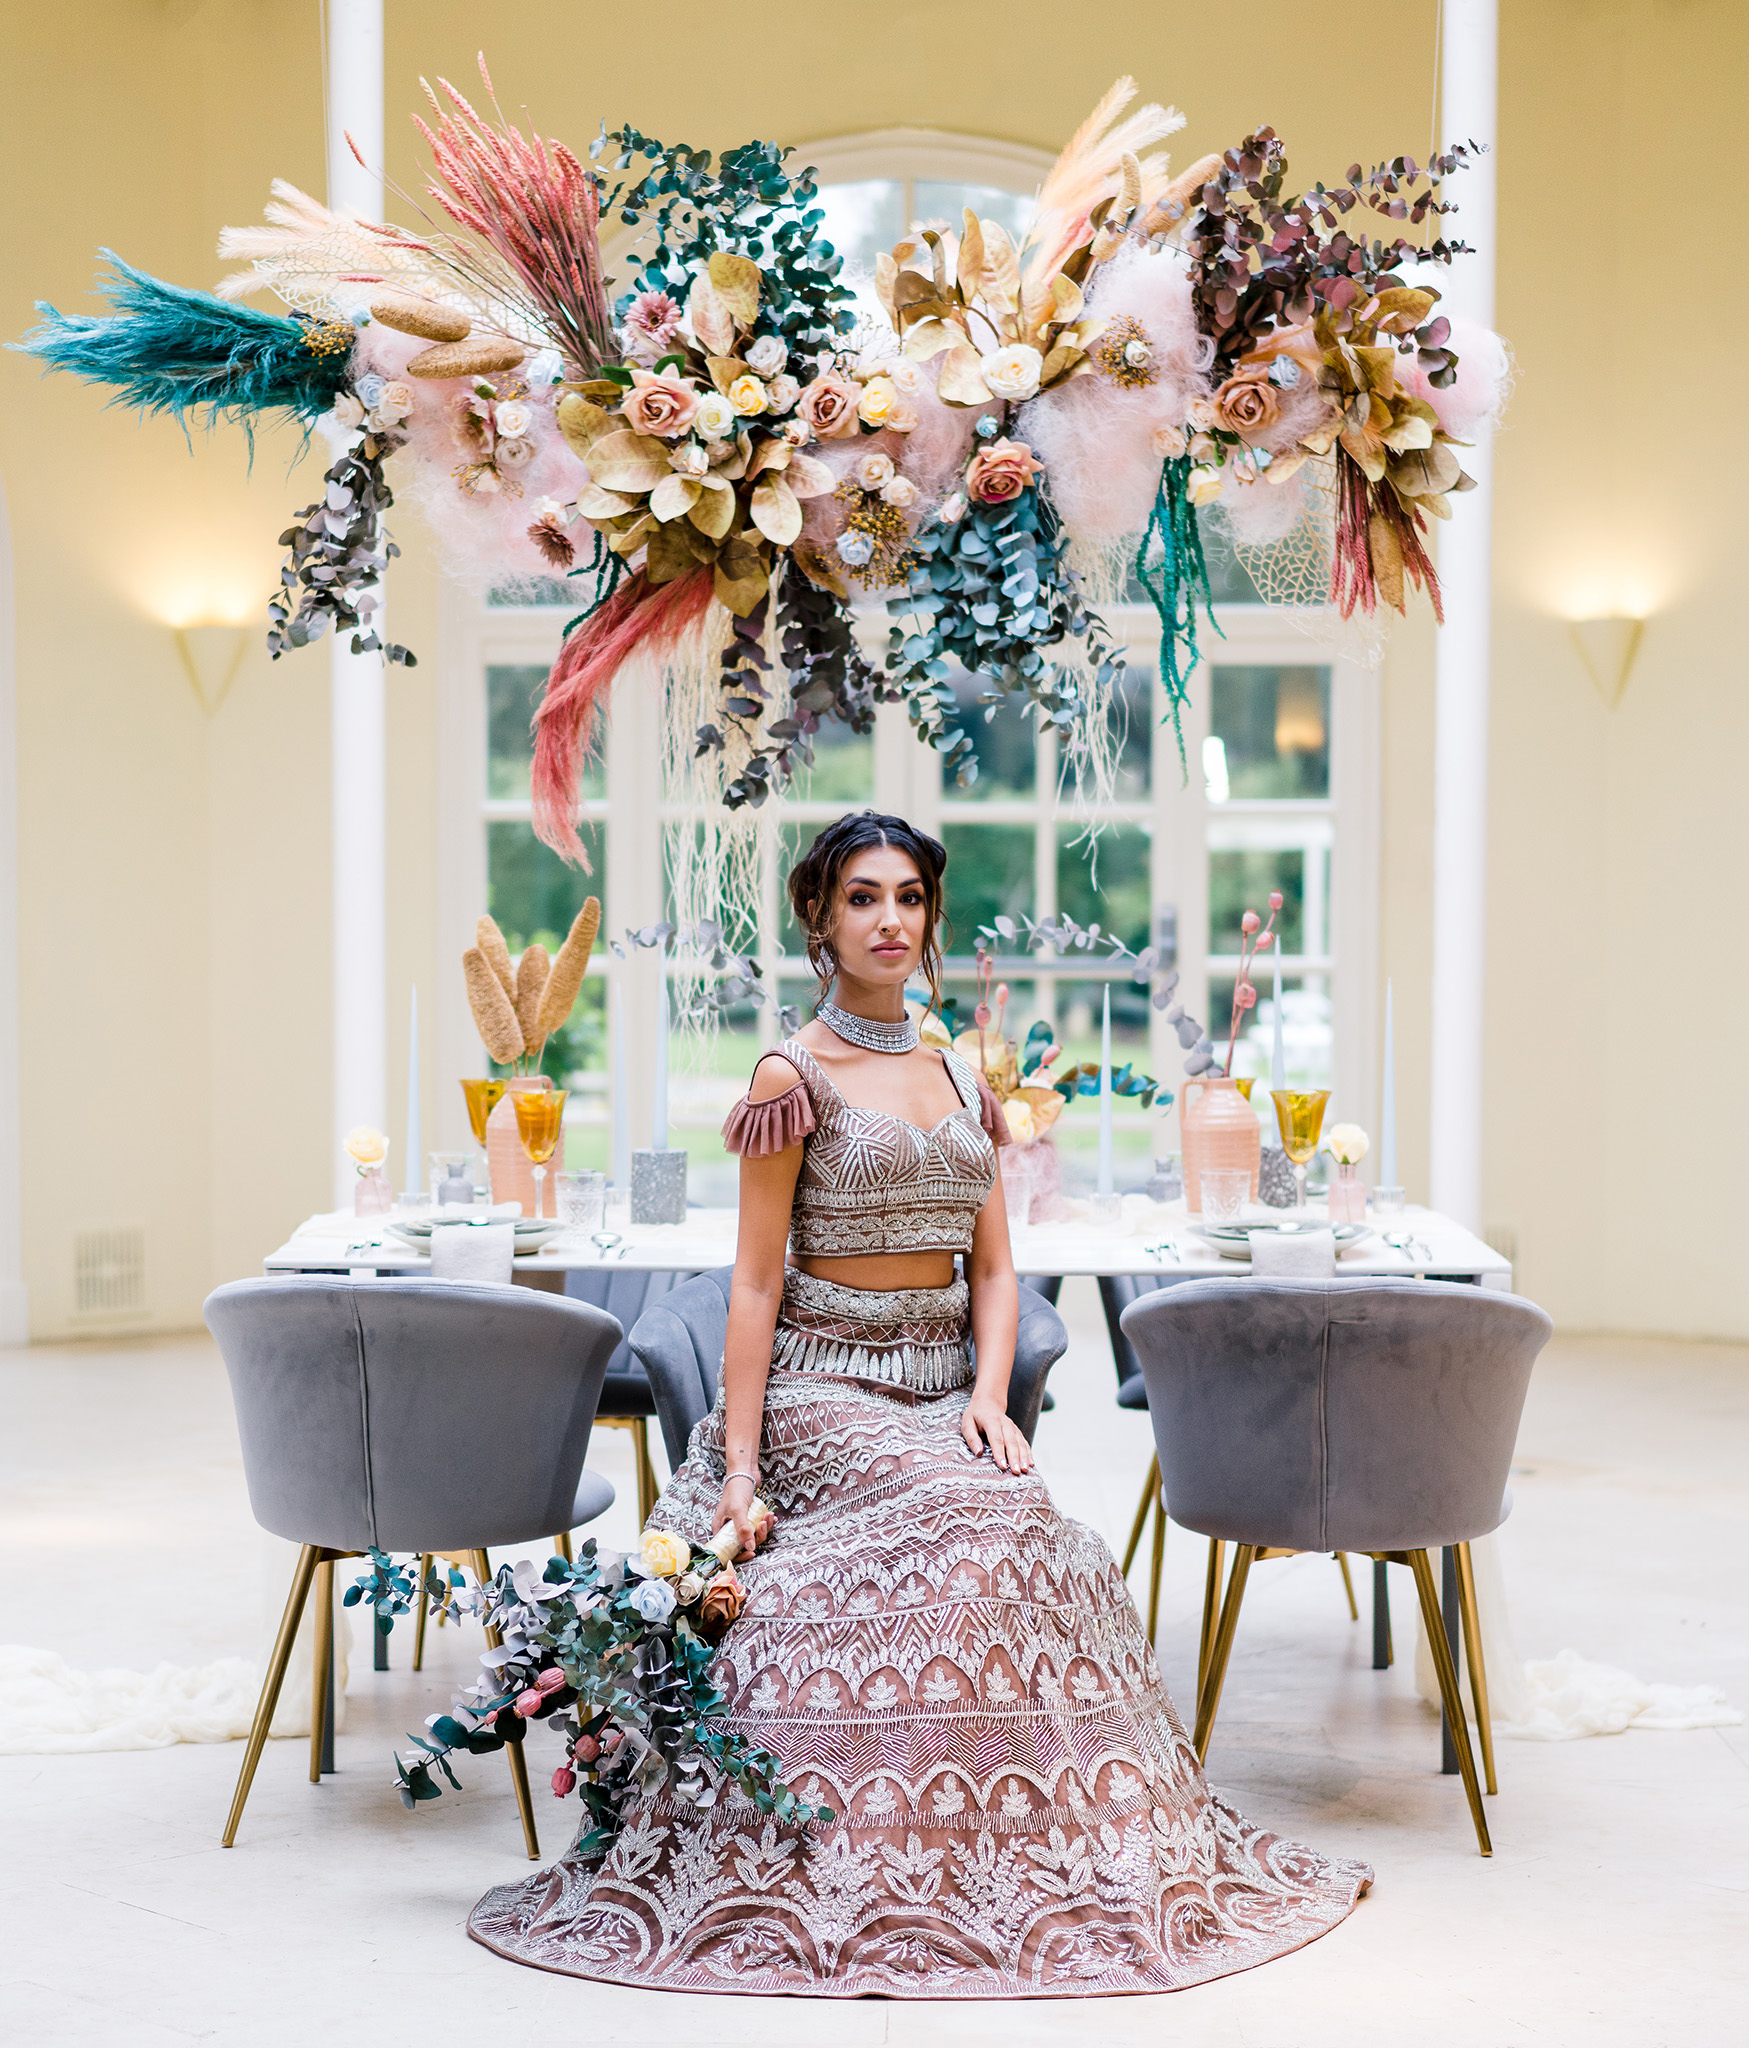 bride in front of wedding decor table